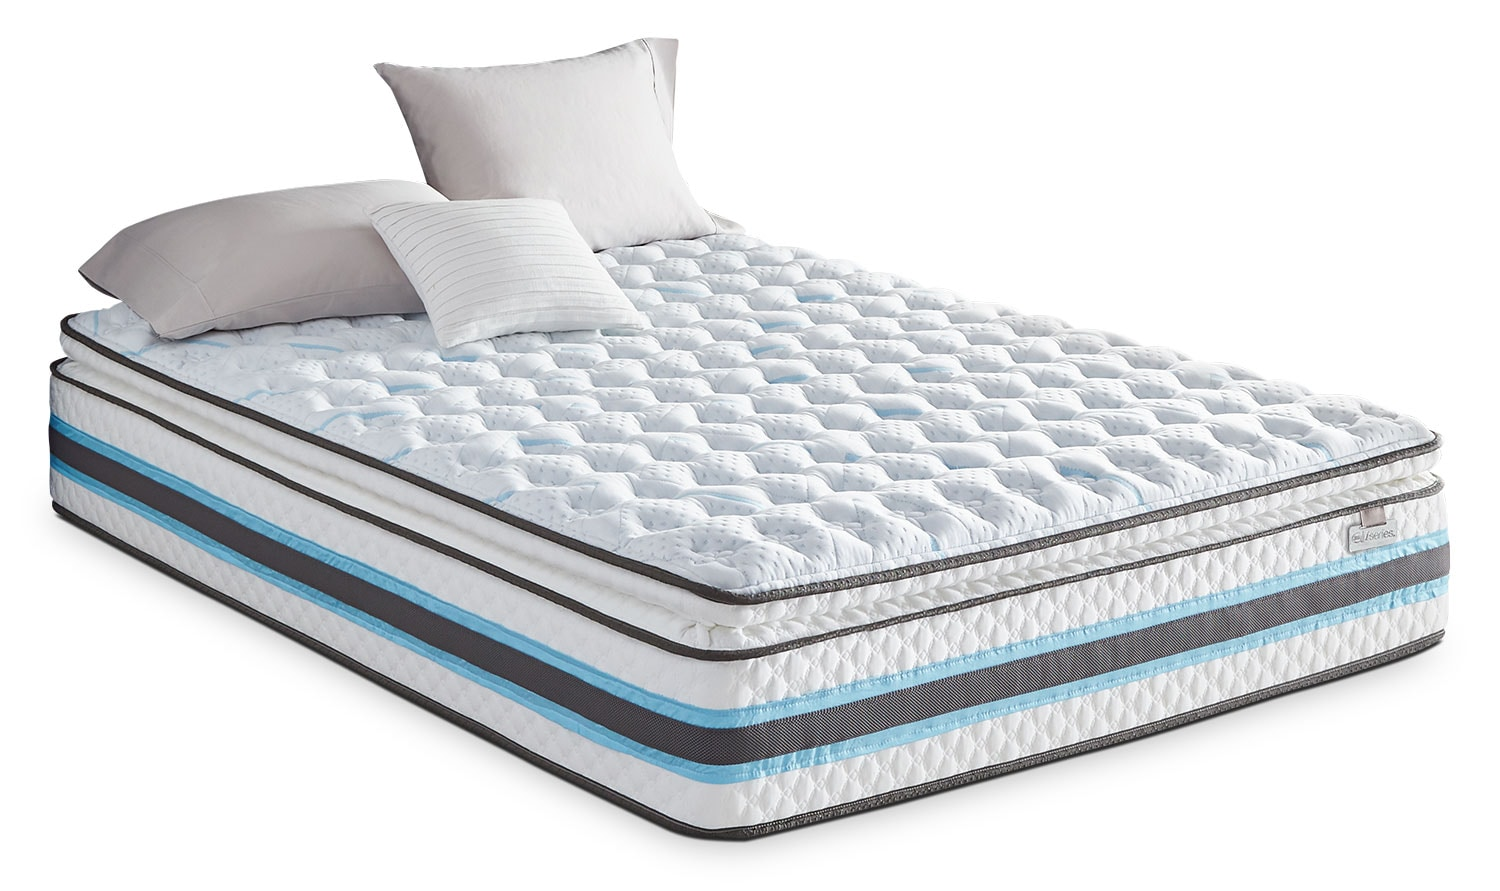 Serta iSeries® Breathtaking Pillow-Top Plush King Mattress